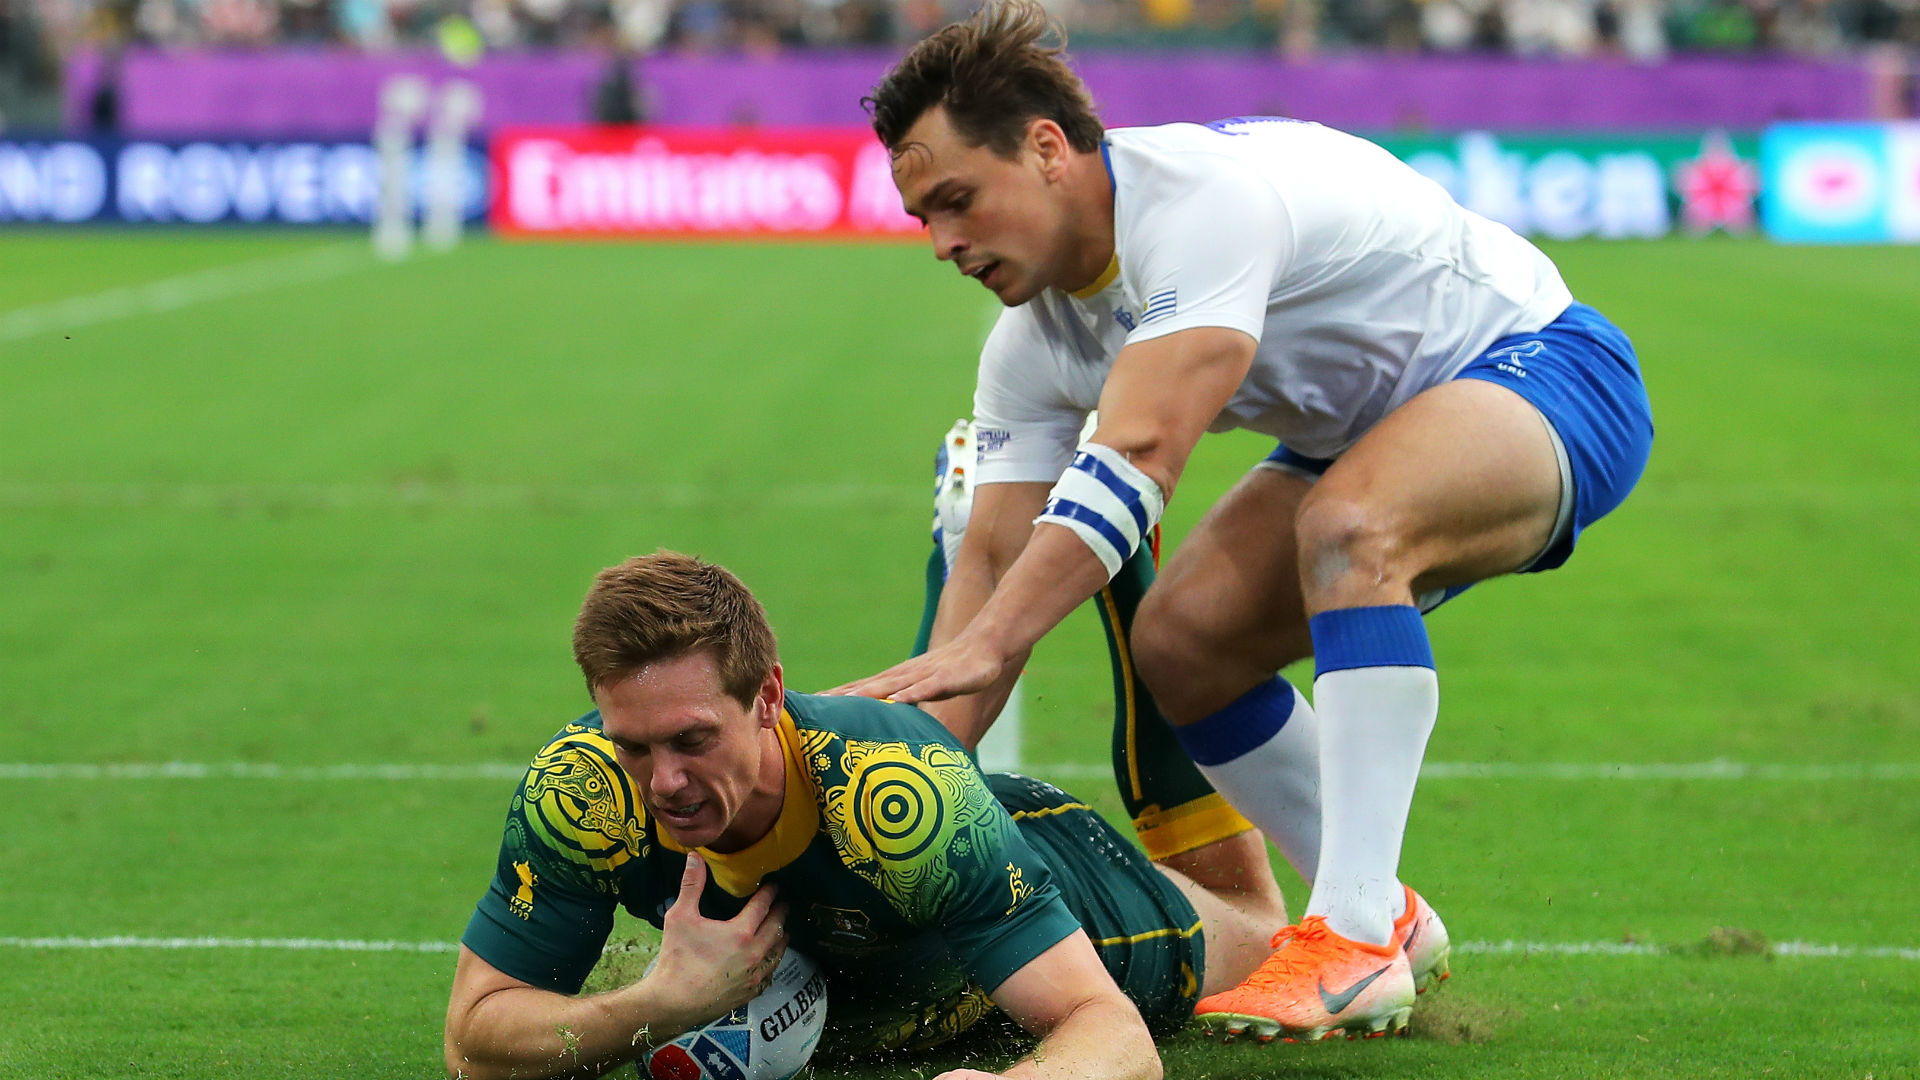 Full-back Dane Haylett-Petty says Michael Cheika's squad rotation has kept Australia on their toes in Japan.